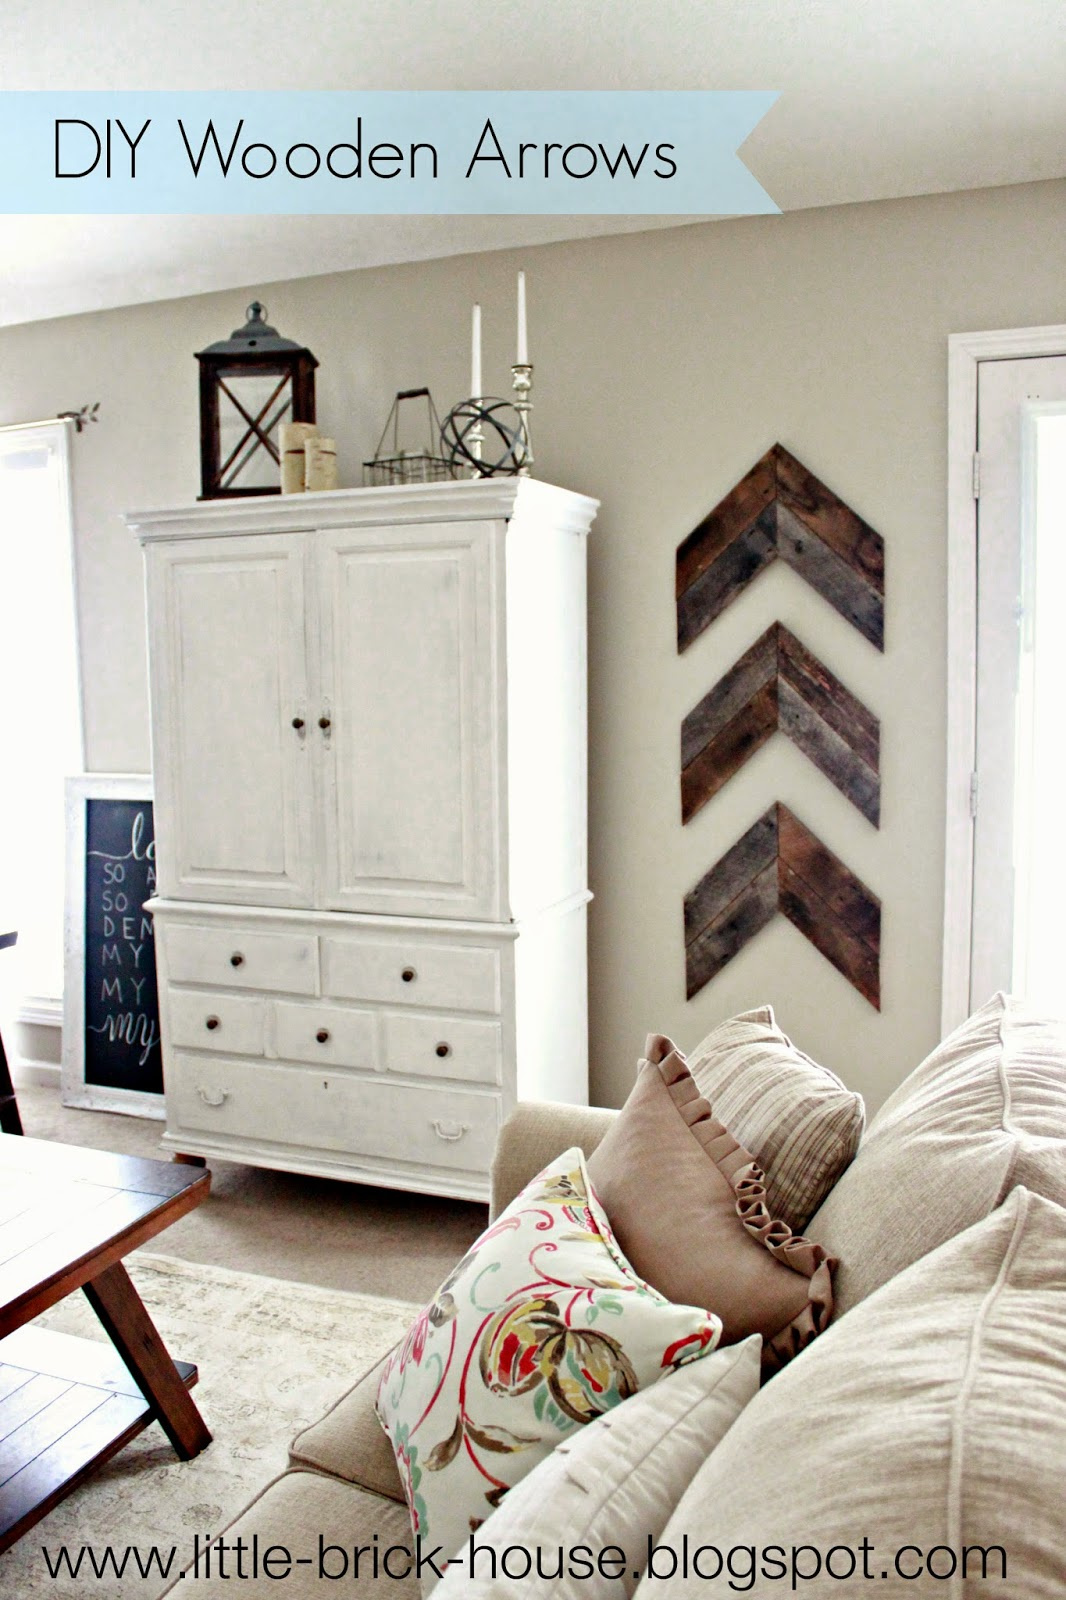 Greatest Little Brick House: Reclaimed Wood Project: DIY Wooden Arrows DM15